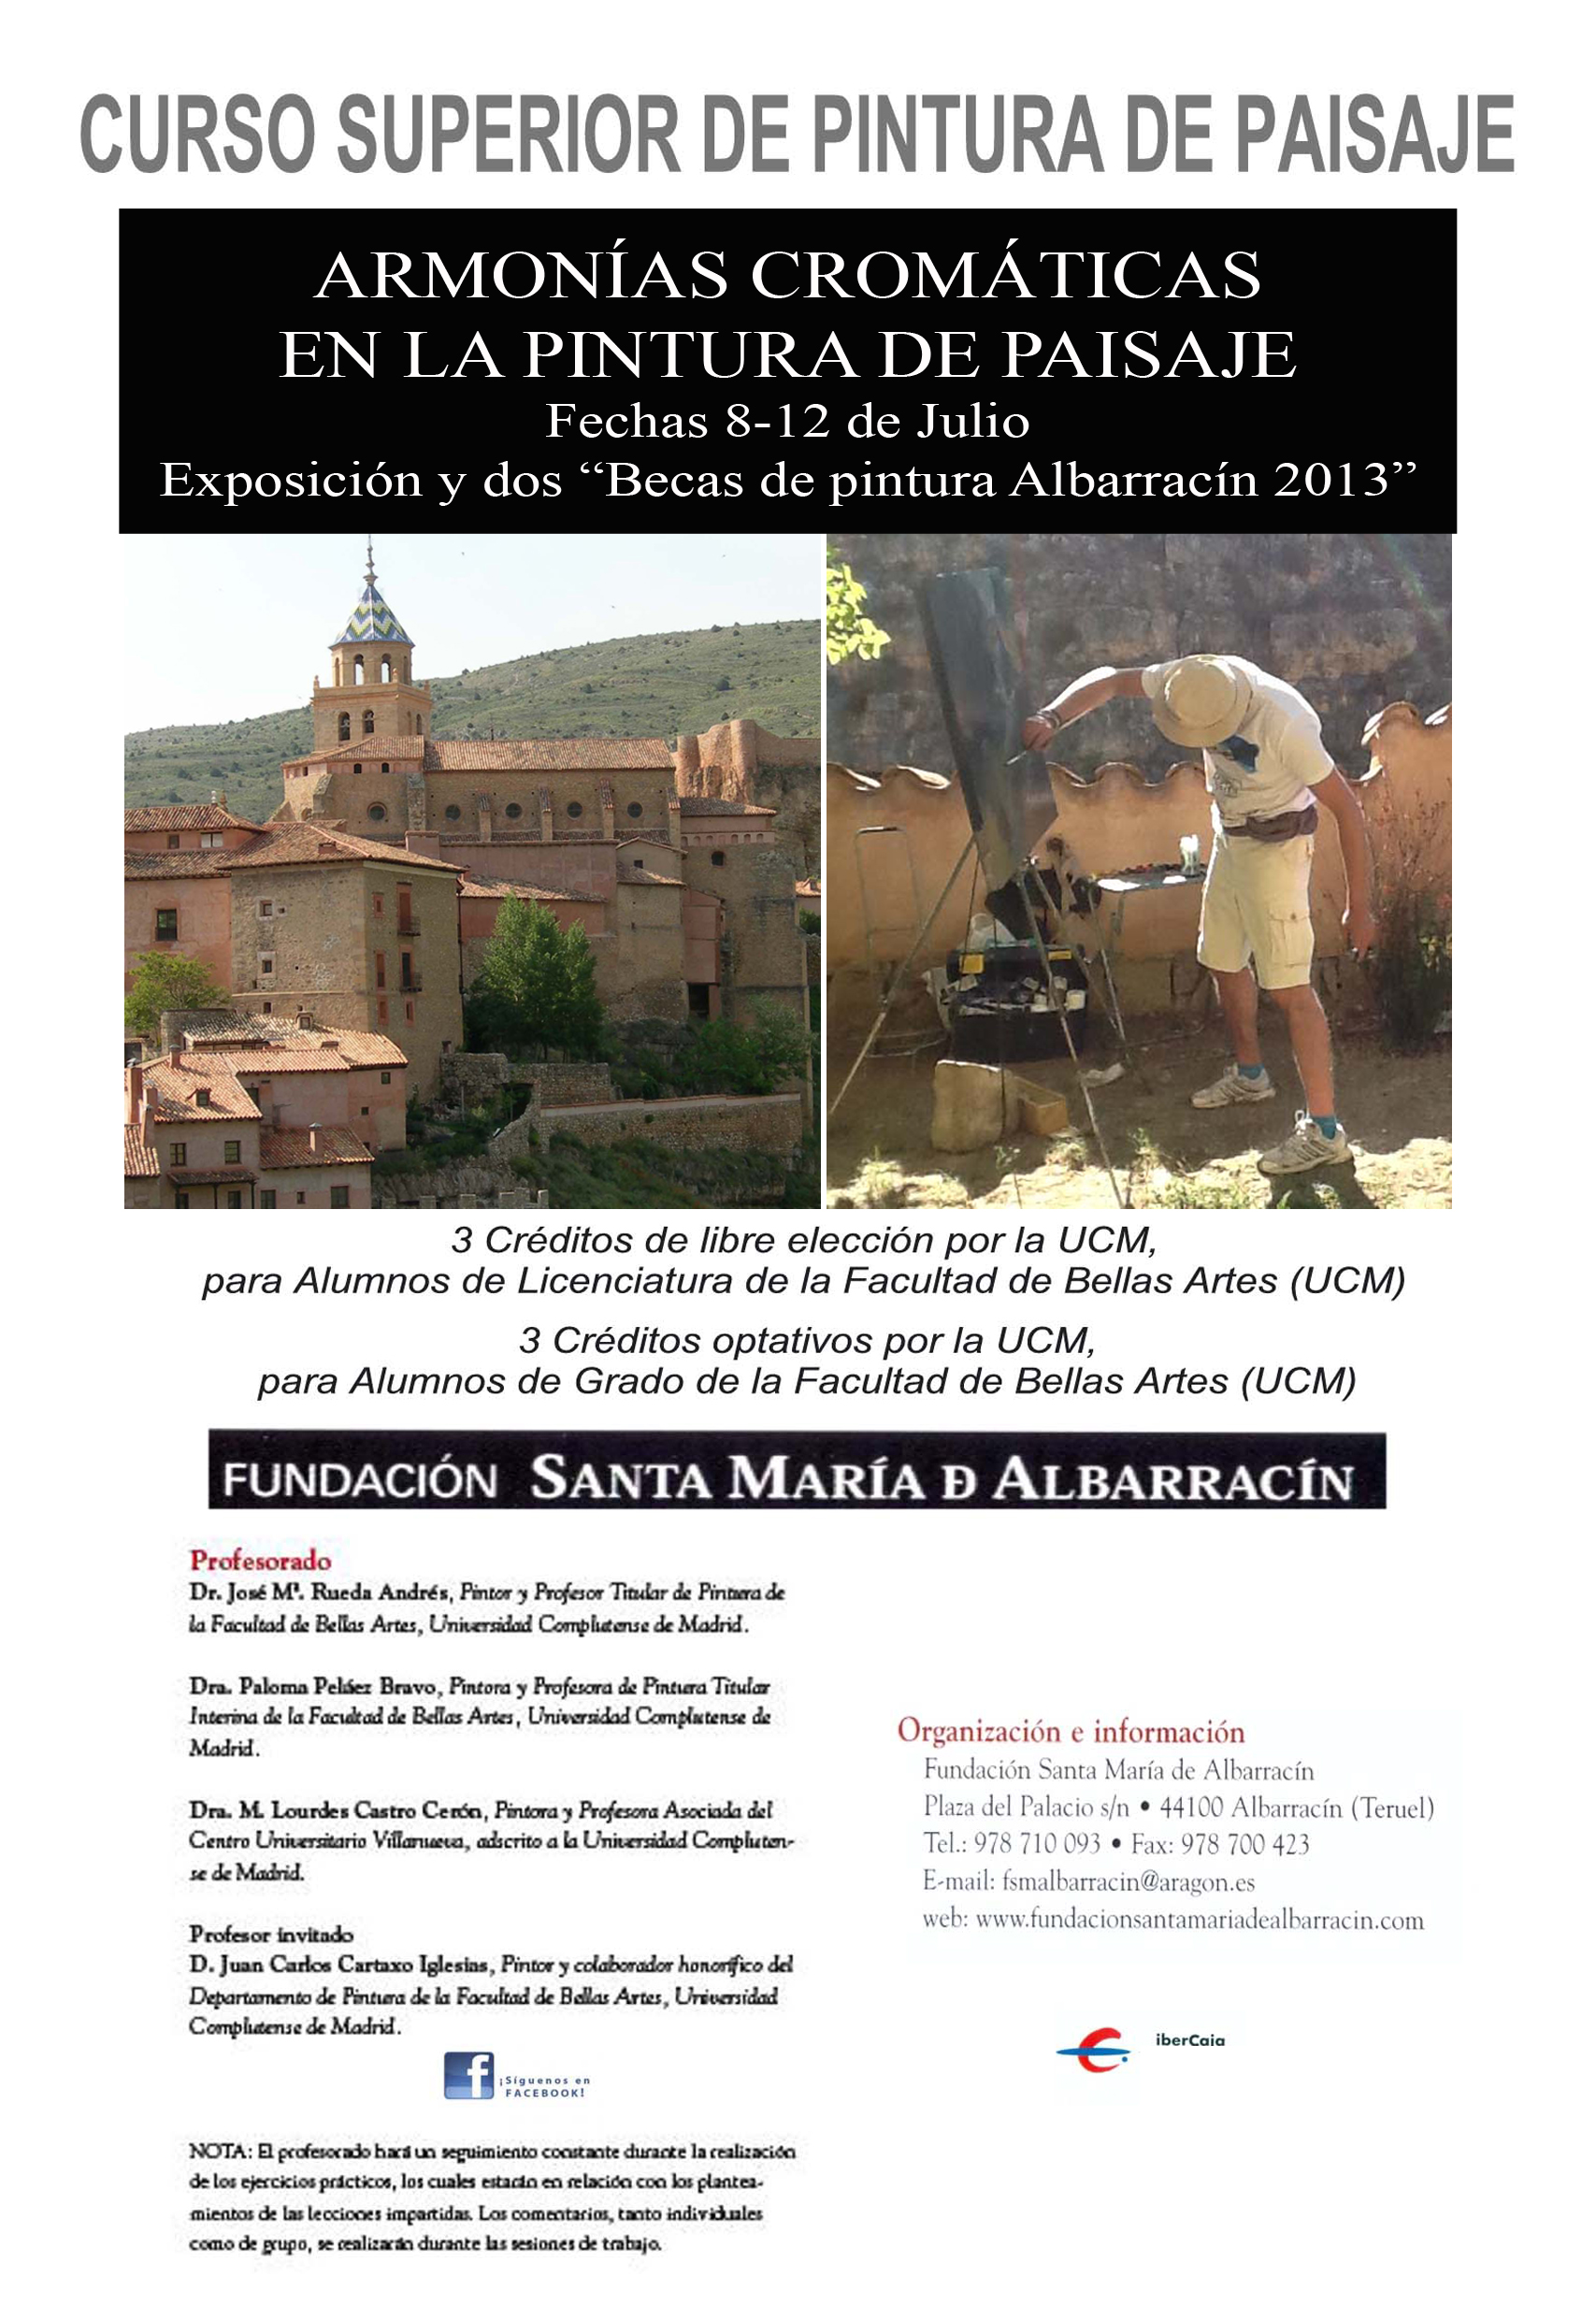 CARTEL ALBARRACIN 2013